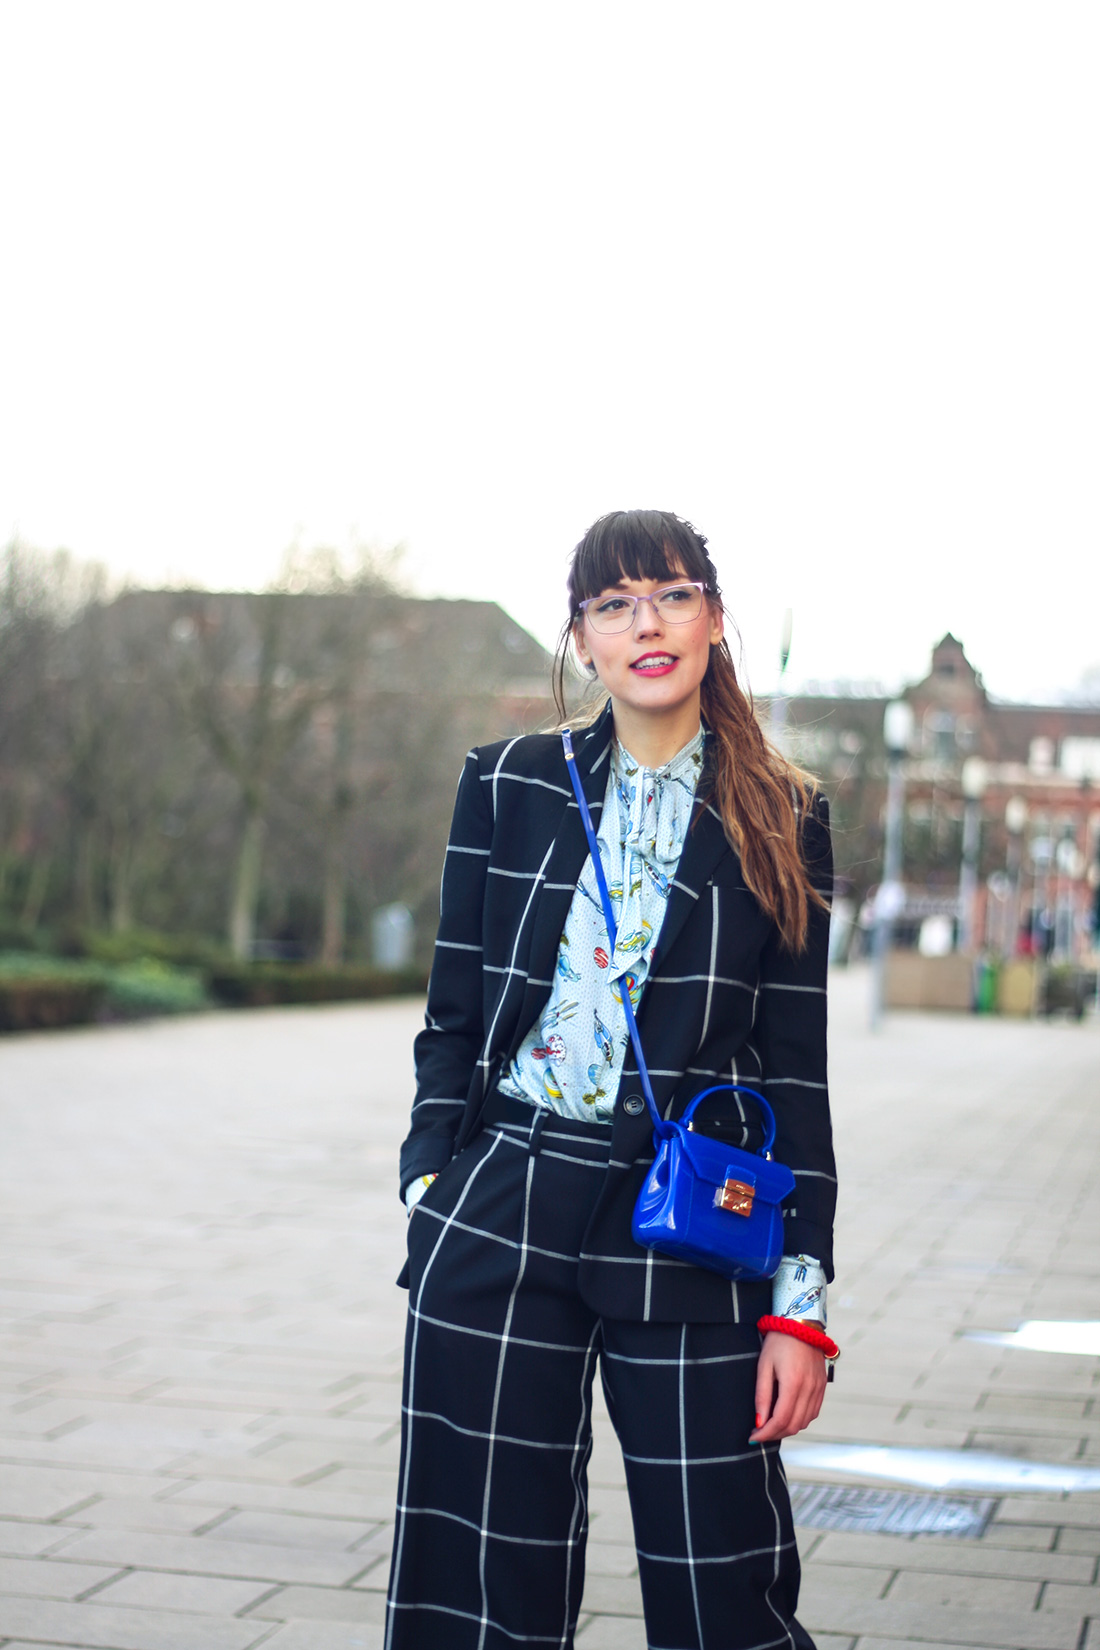 amsterdam-fashion-week-outfit-spijkers-en-spijkers-suit-specsavers-glasses-5